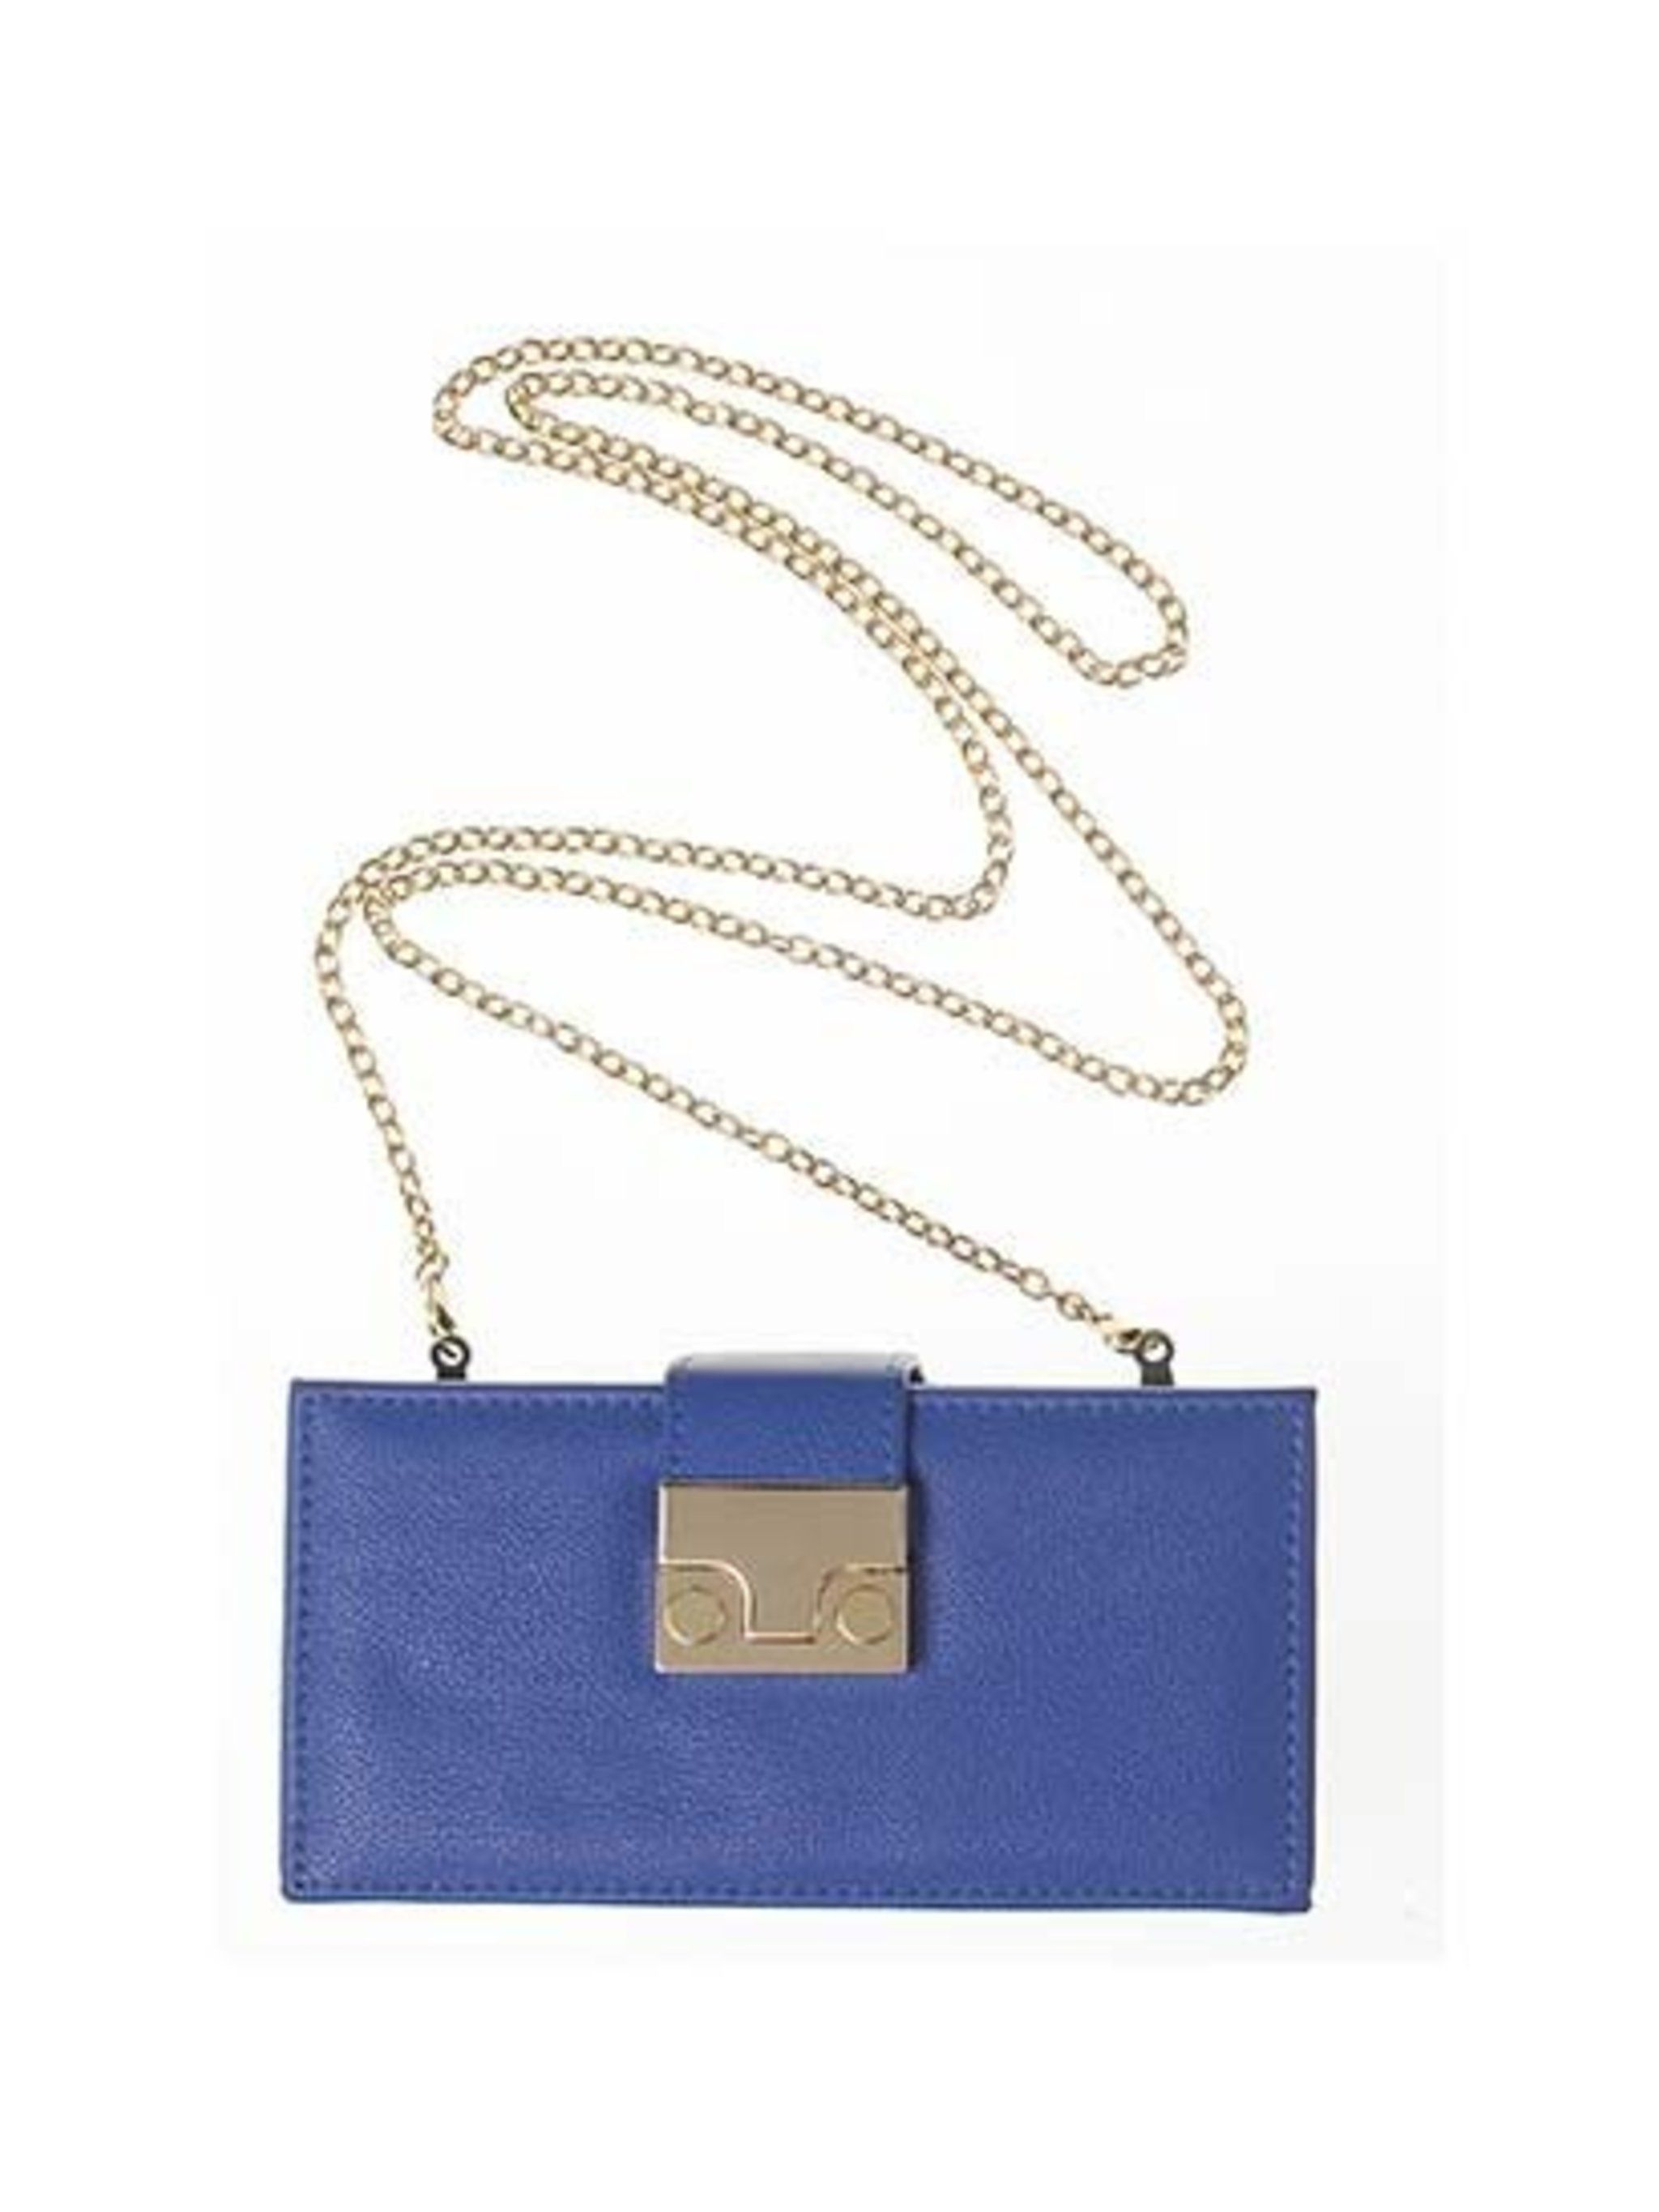 """<p>Blue is a great versatile colour. This box chain bag is great paired with a casual look or can be styled for a night out. Maybe one of the lucky <a href=""""http://www.elleuk.com/elle-style-awards/news/win-tickets-to-the-elle-style-awards"""">Warehouse ticke"""